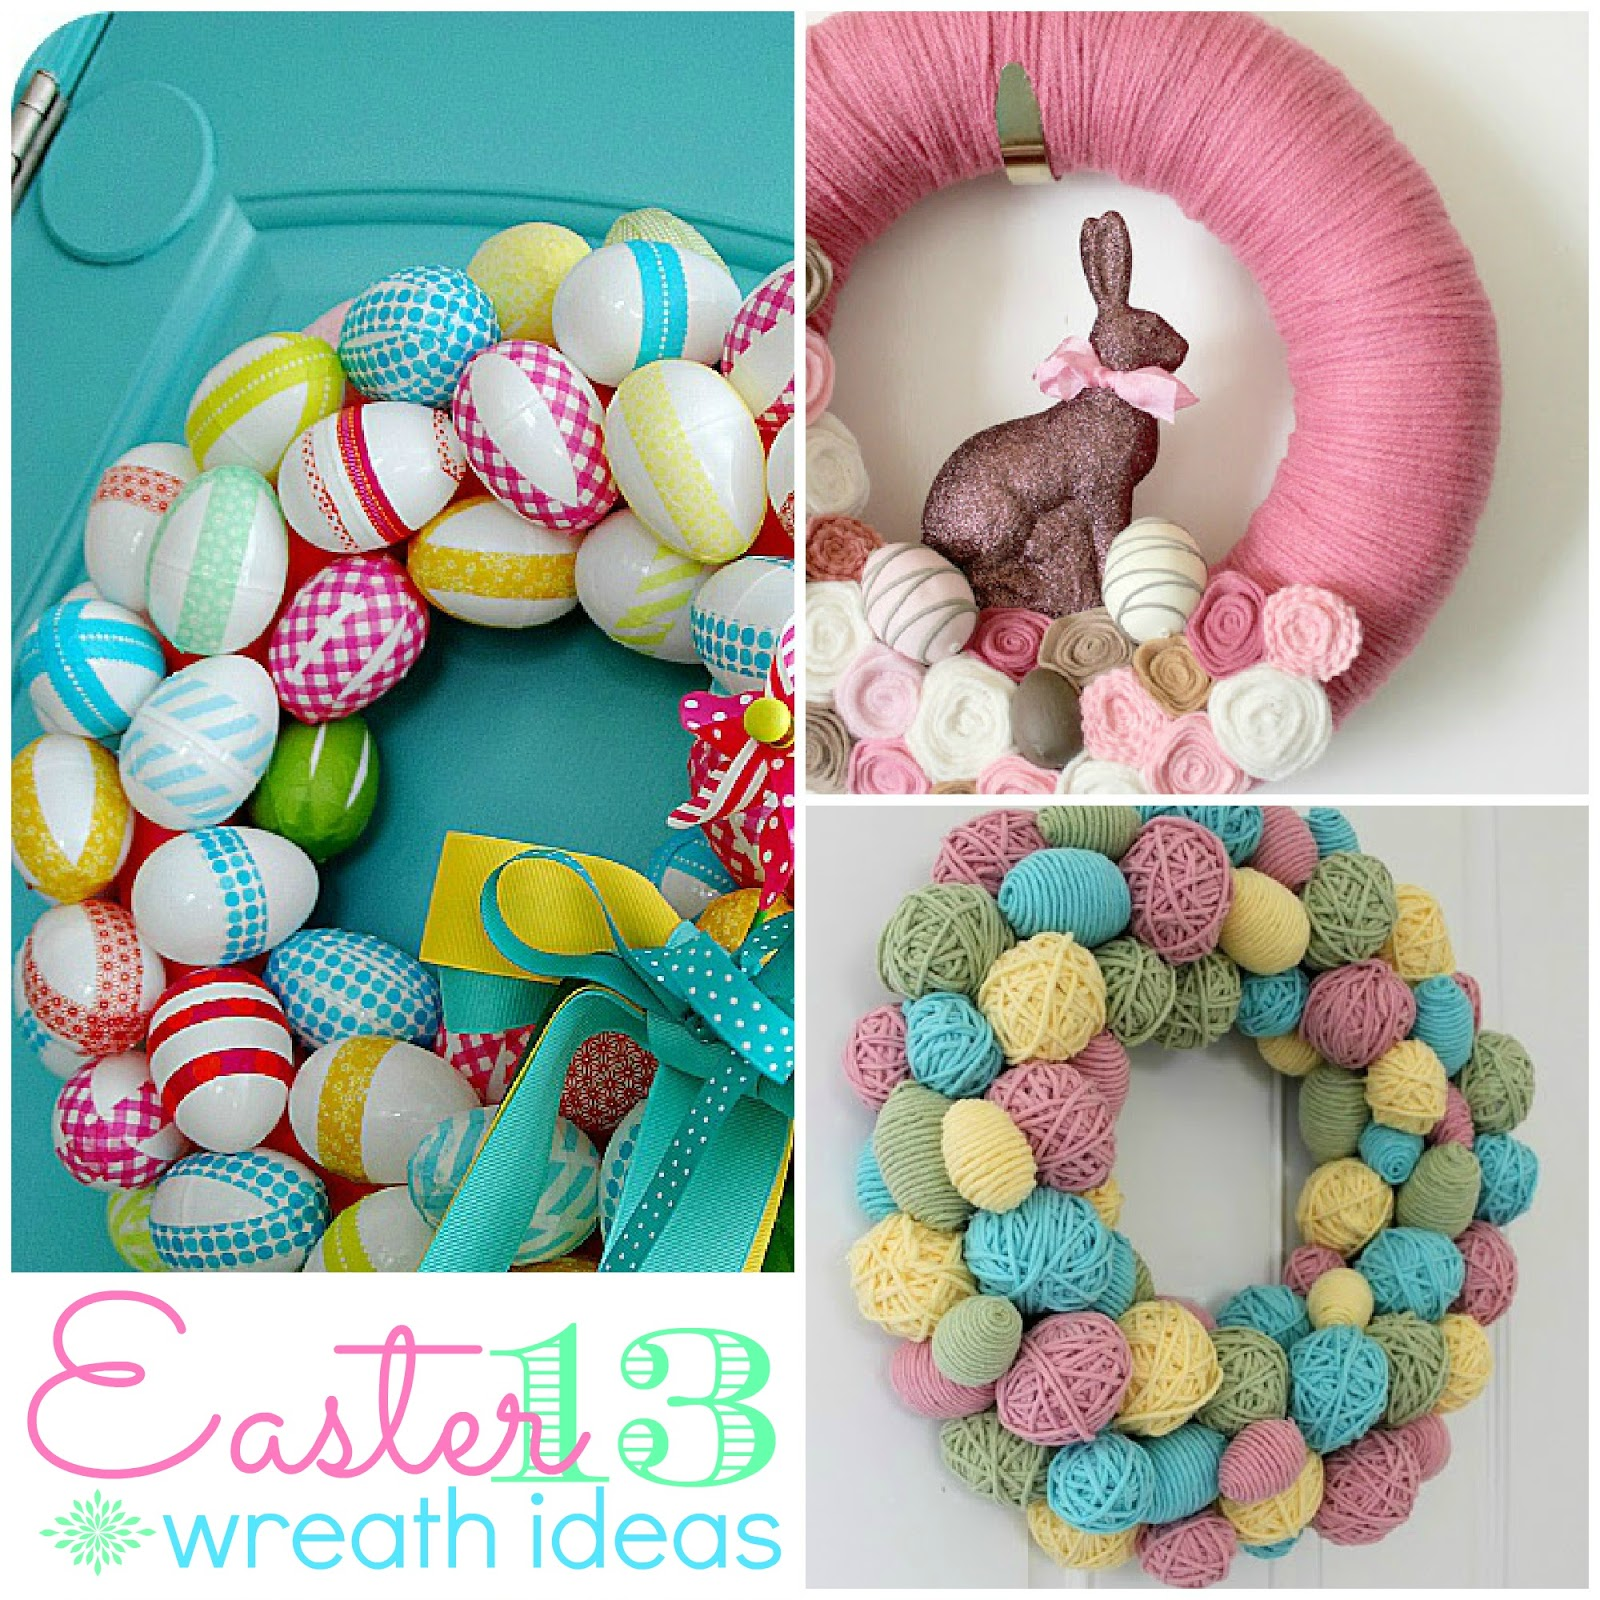 13 Easter Wreath Ideas The Crafted Sparrow